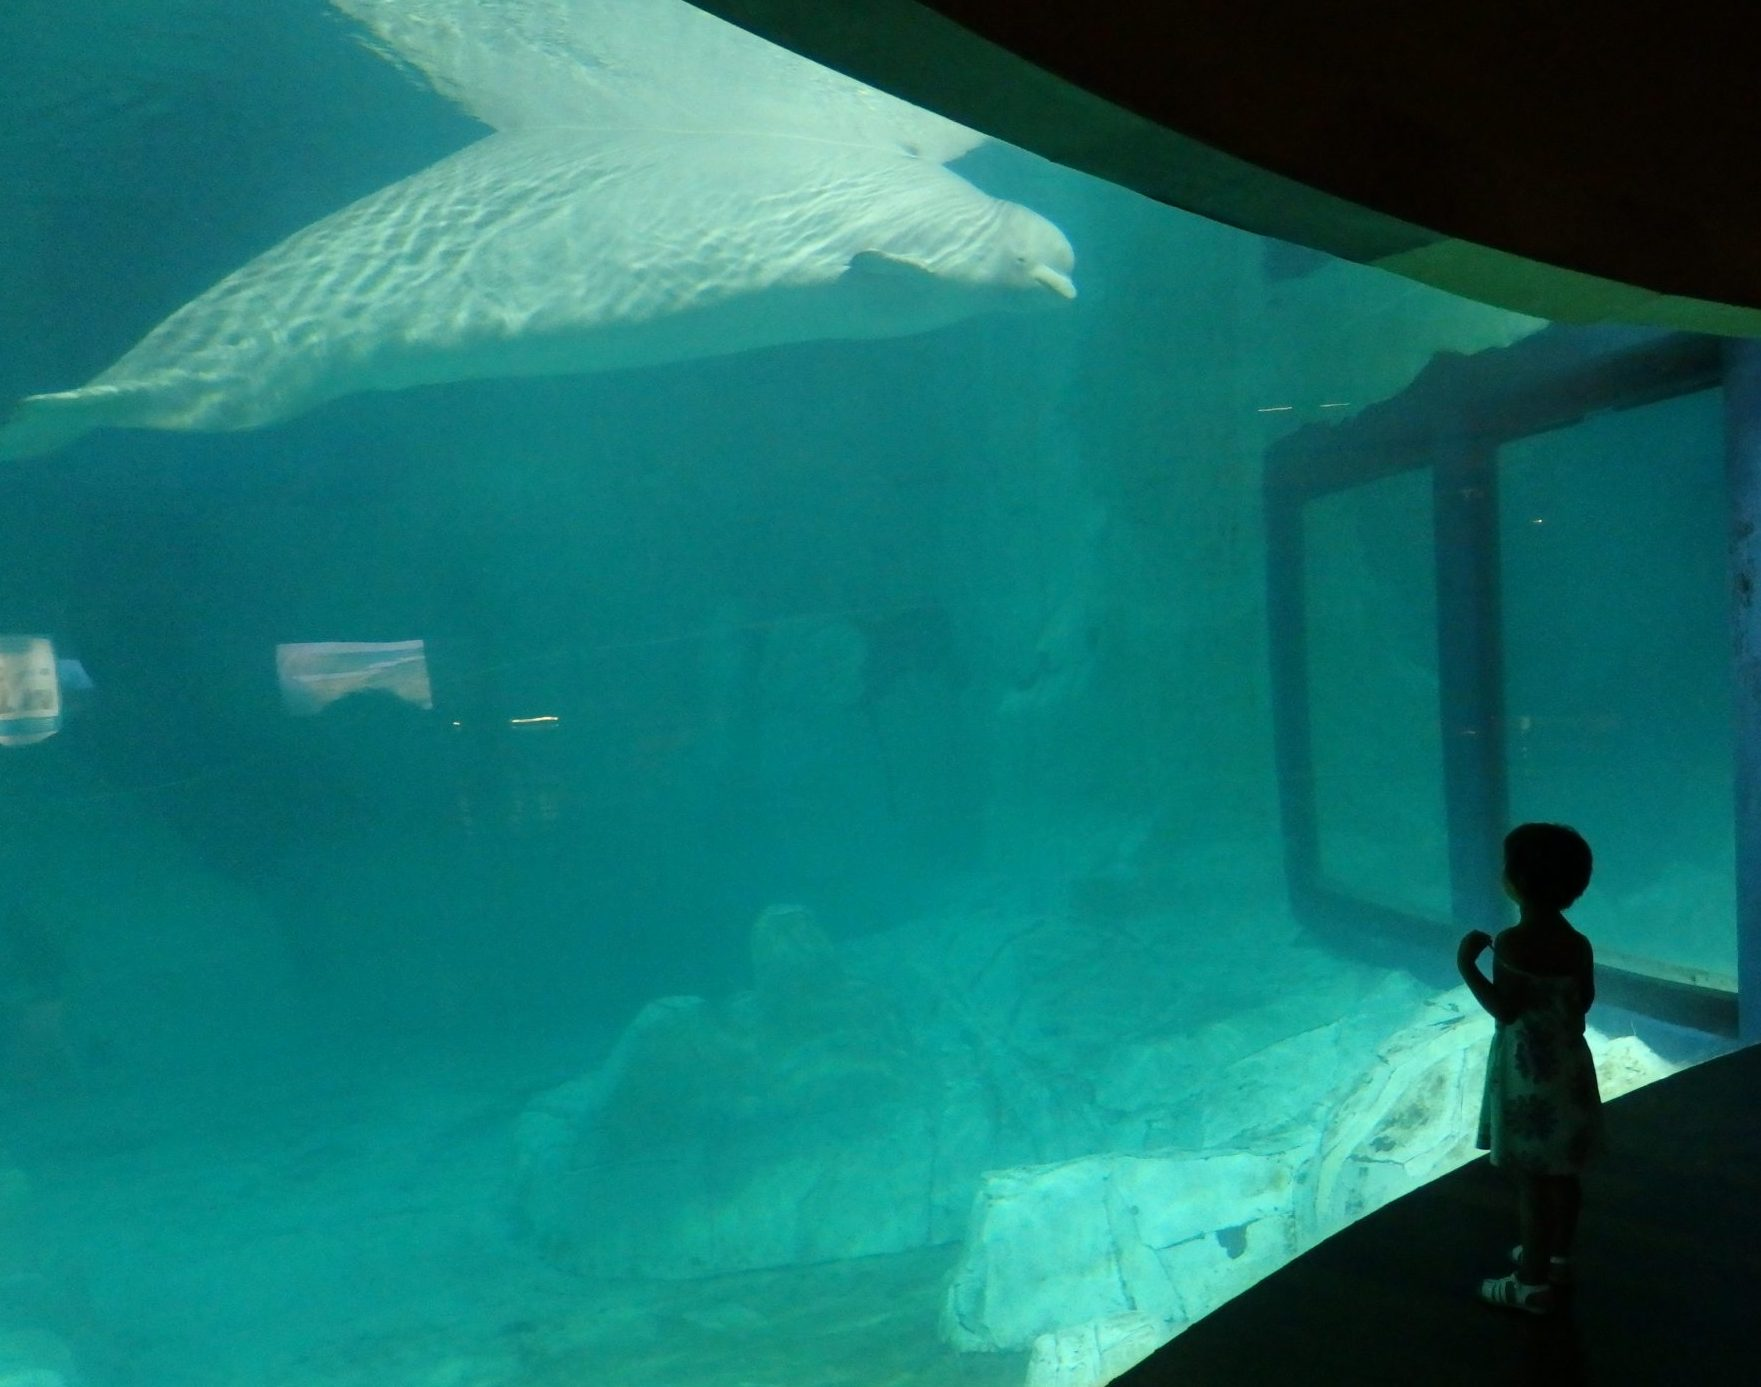 a beluga whale in the Arctic exhibit at the City of Arts and Sciences in Valencia, Spain